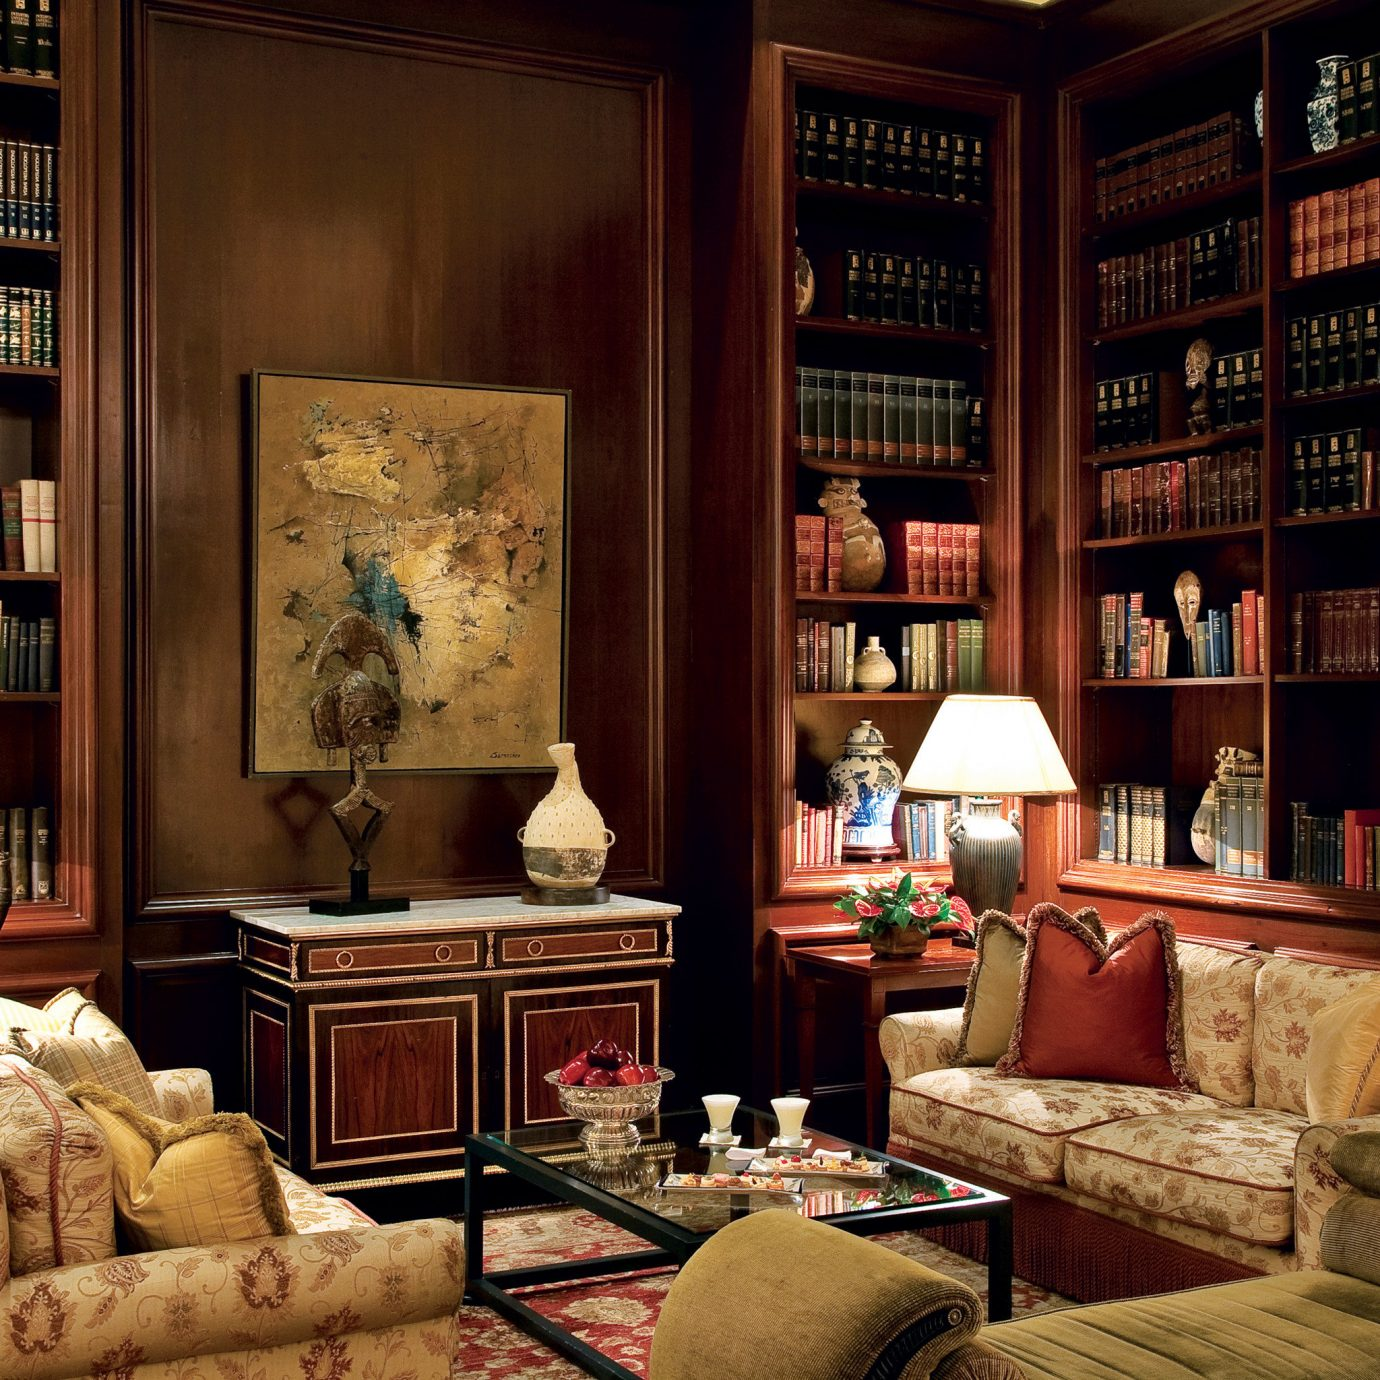 Boutique Hotels Historic Hotels Lounge Luxury living room shelf home cluttered